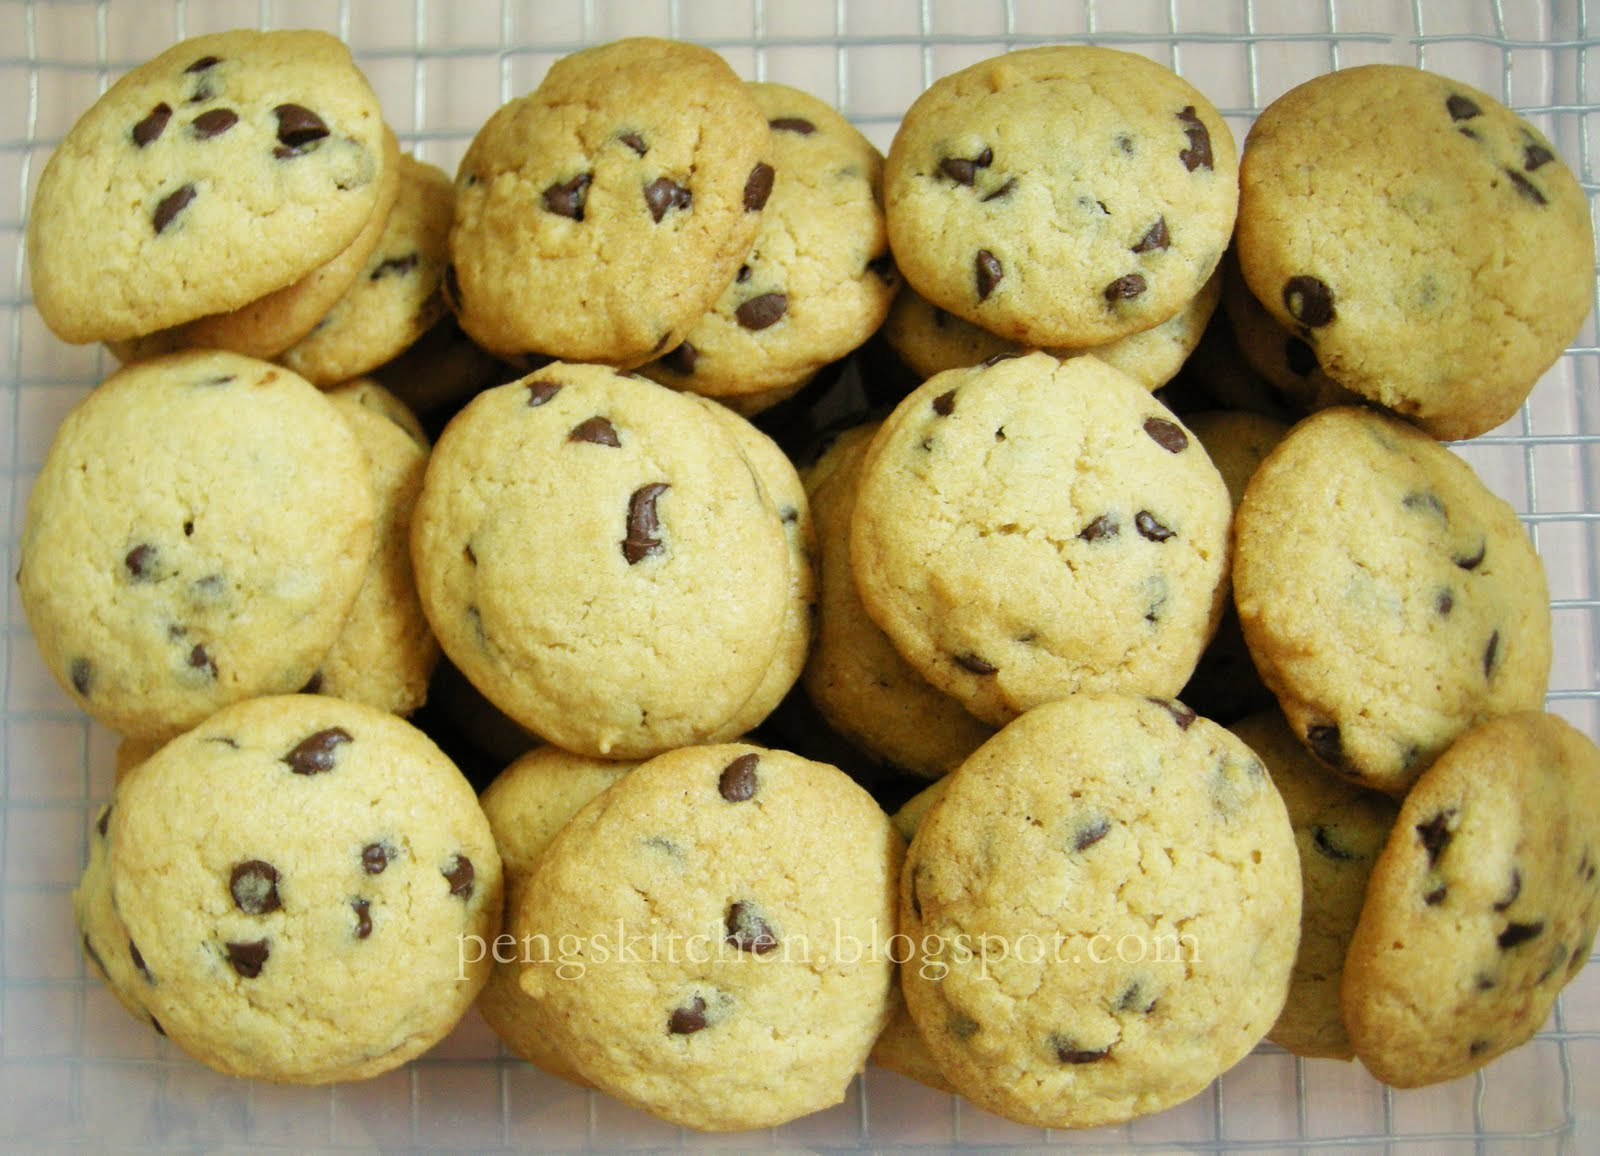 Peng's Kitchen: Crunchy Chocolate Chips Cookies